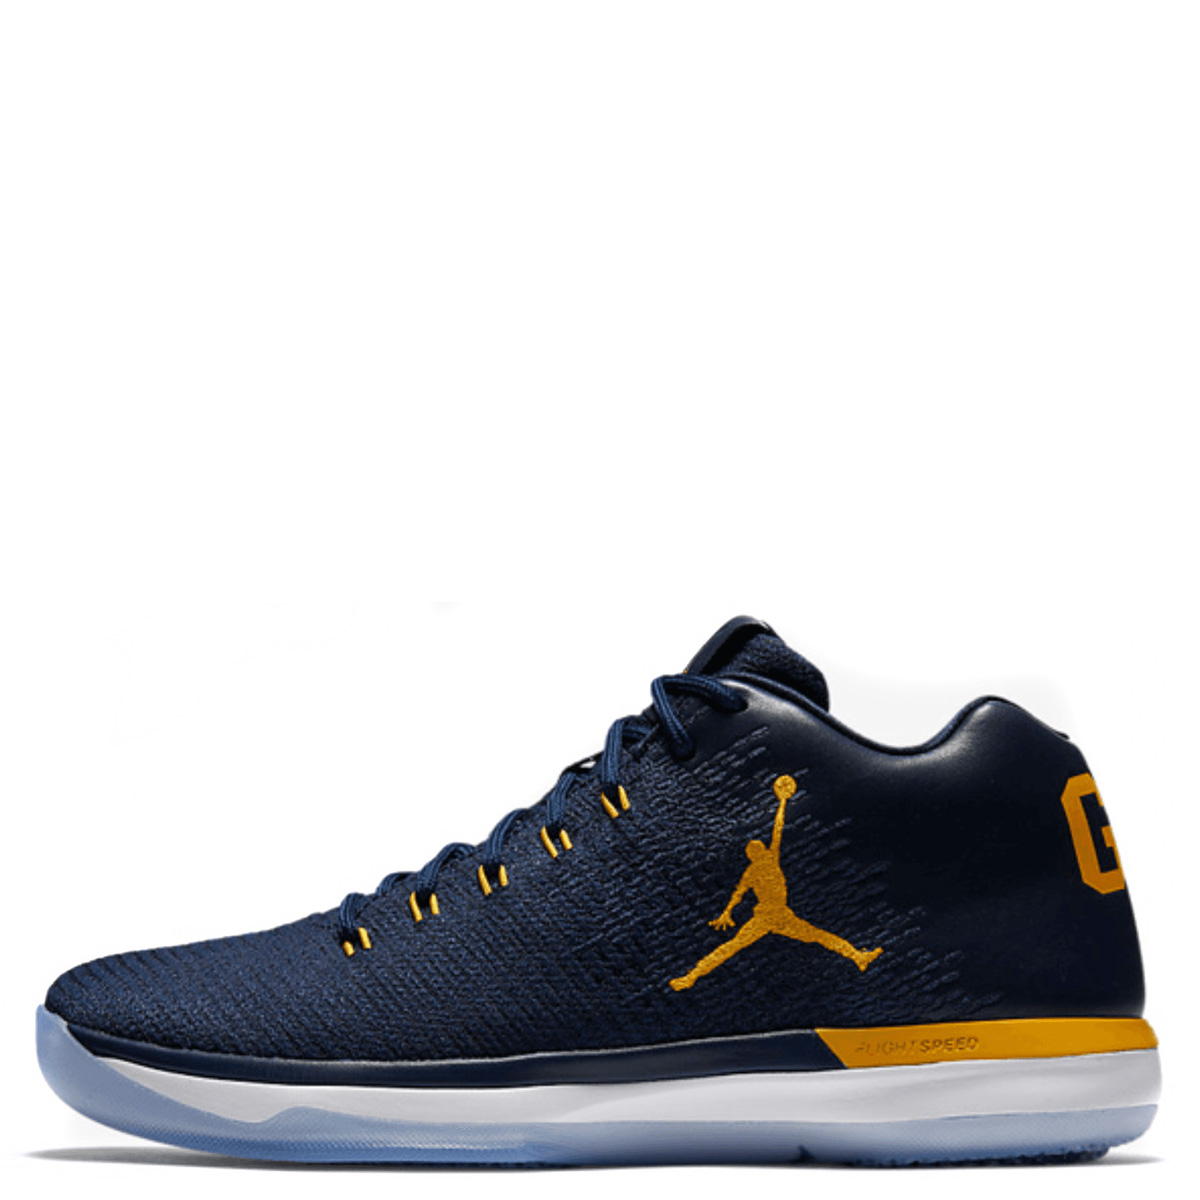 quality design 117f4 41d4c Nike NIKE Air Jordan 31 sneakers men AIR JORDAN 31 LOW MICHIGAN navy  845,037-021 [192]